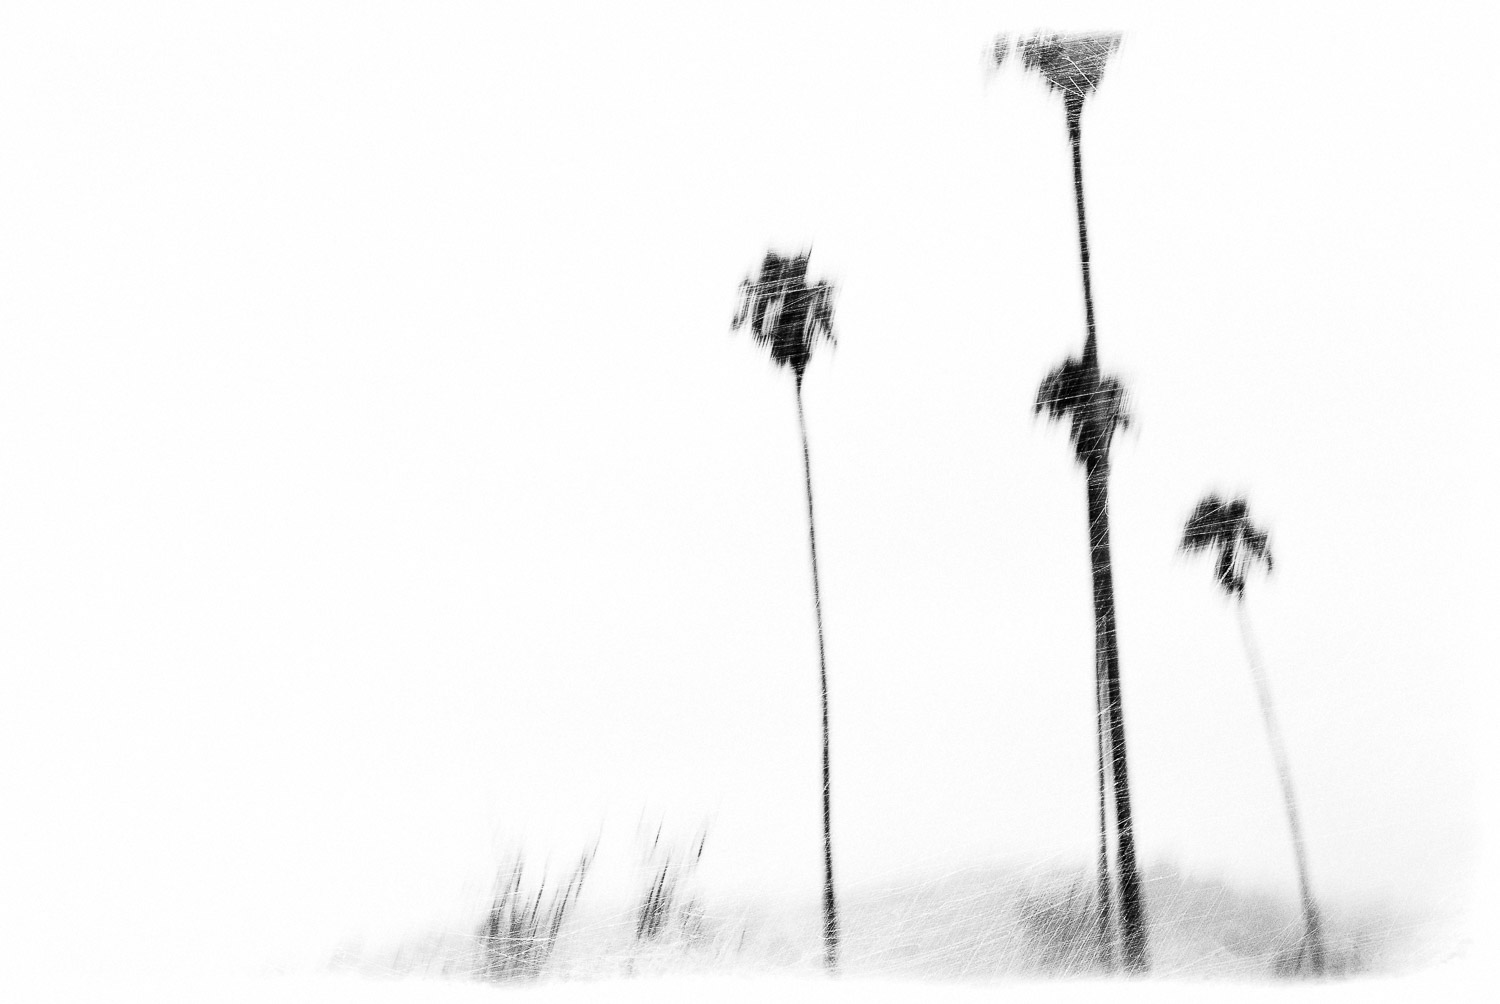 Larkspur Palms #2 | Mark Lindsay